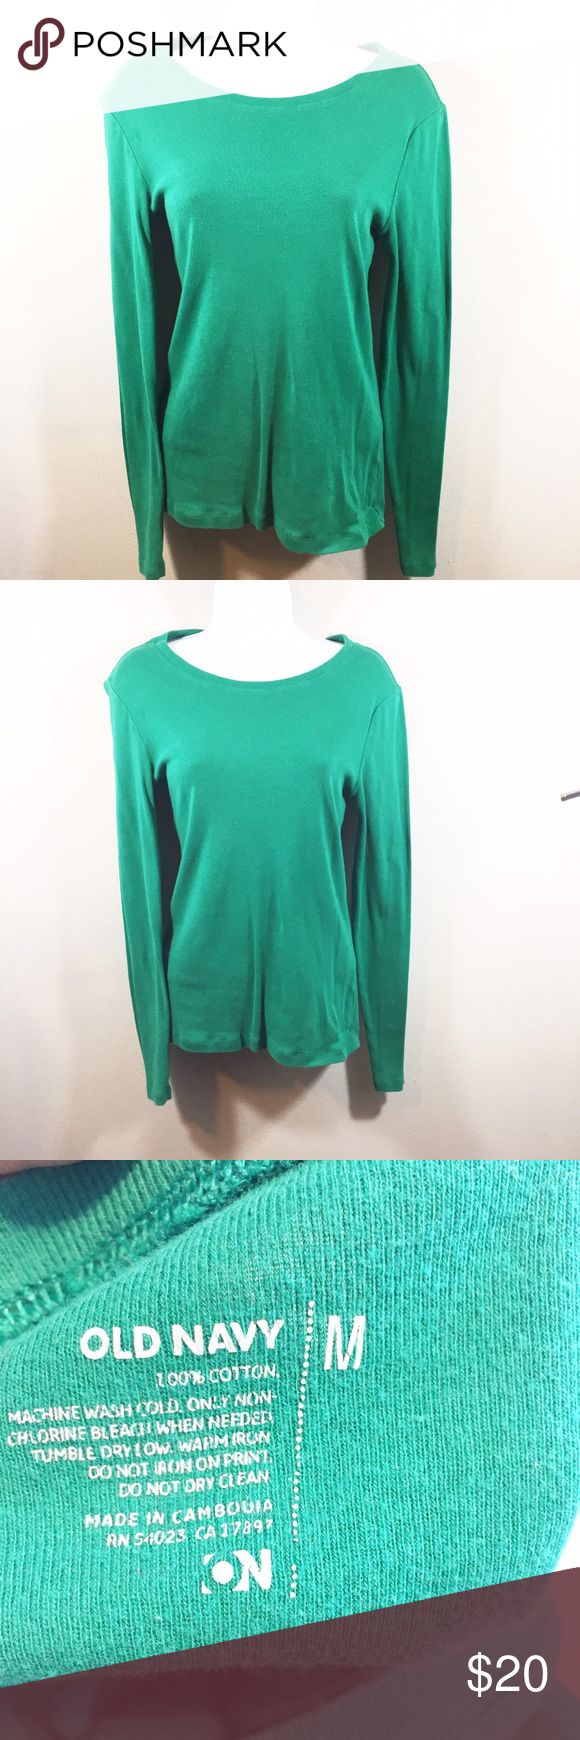 Old Navy Basic Green Long Sleeve Top A must have staple in any women's closet. Basic green long sleeve top. 100% cotton. Old Navy Tops Tees - Long Sleeve